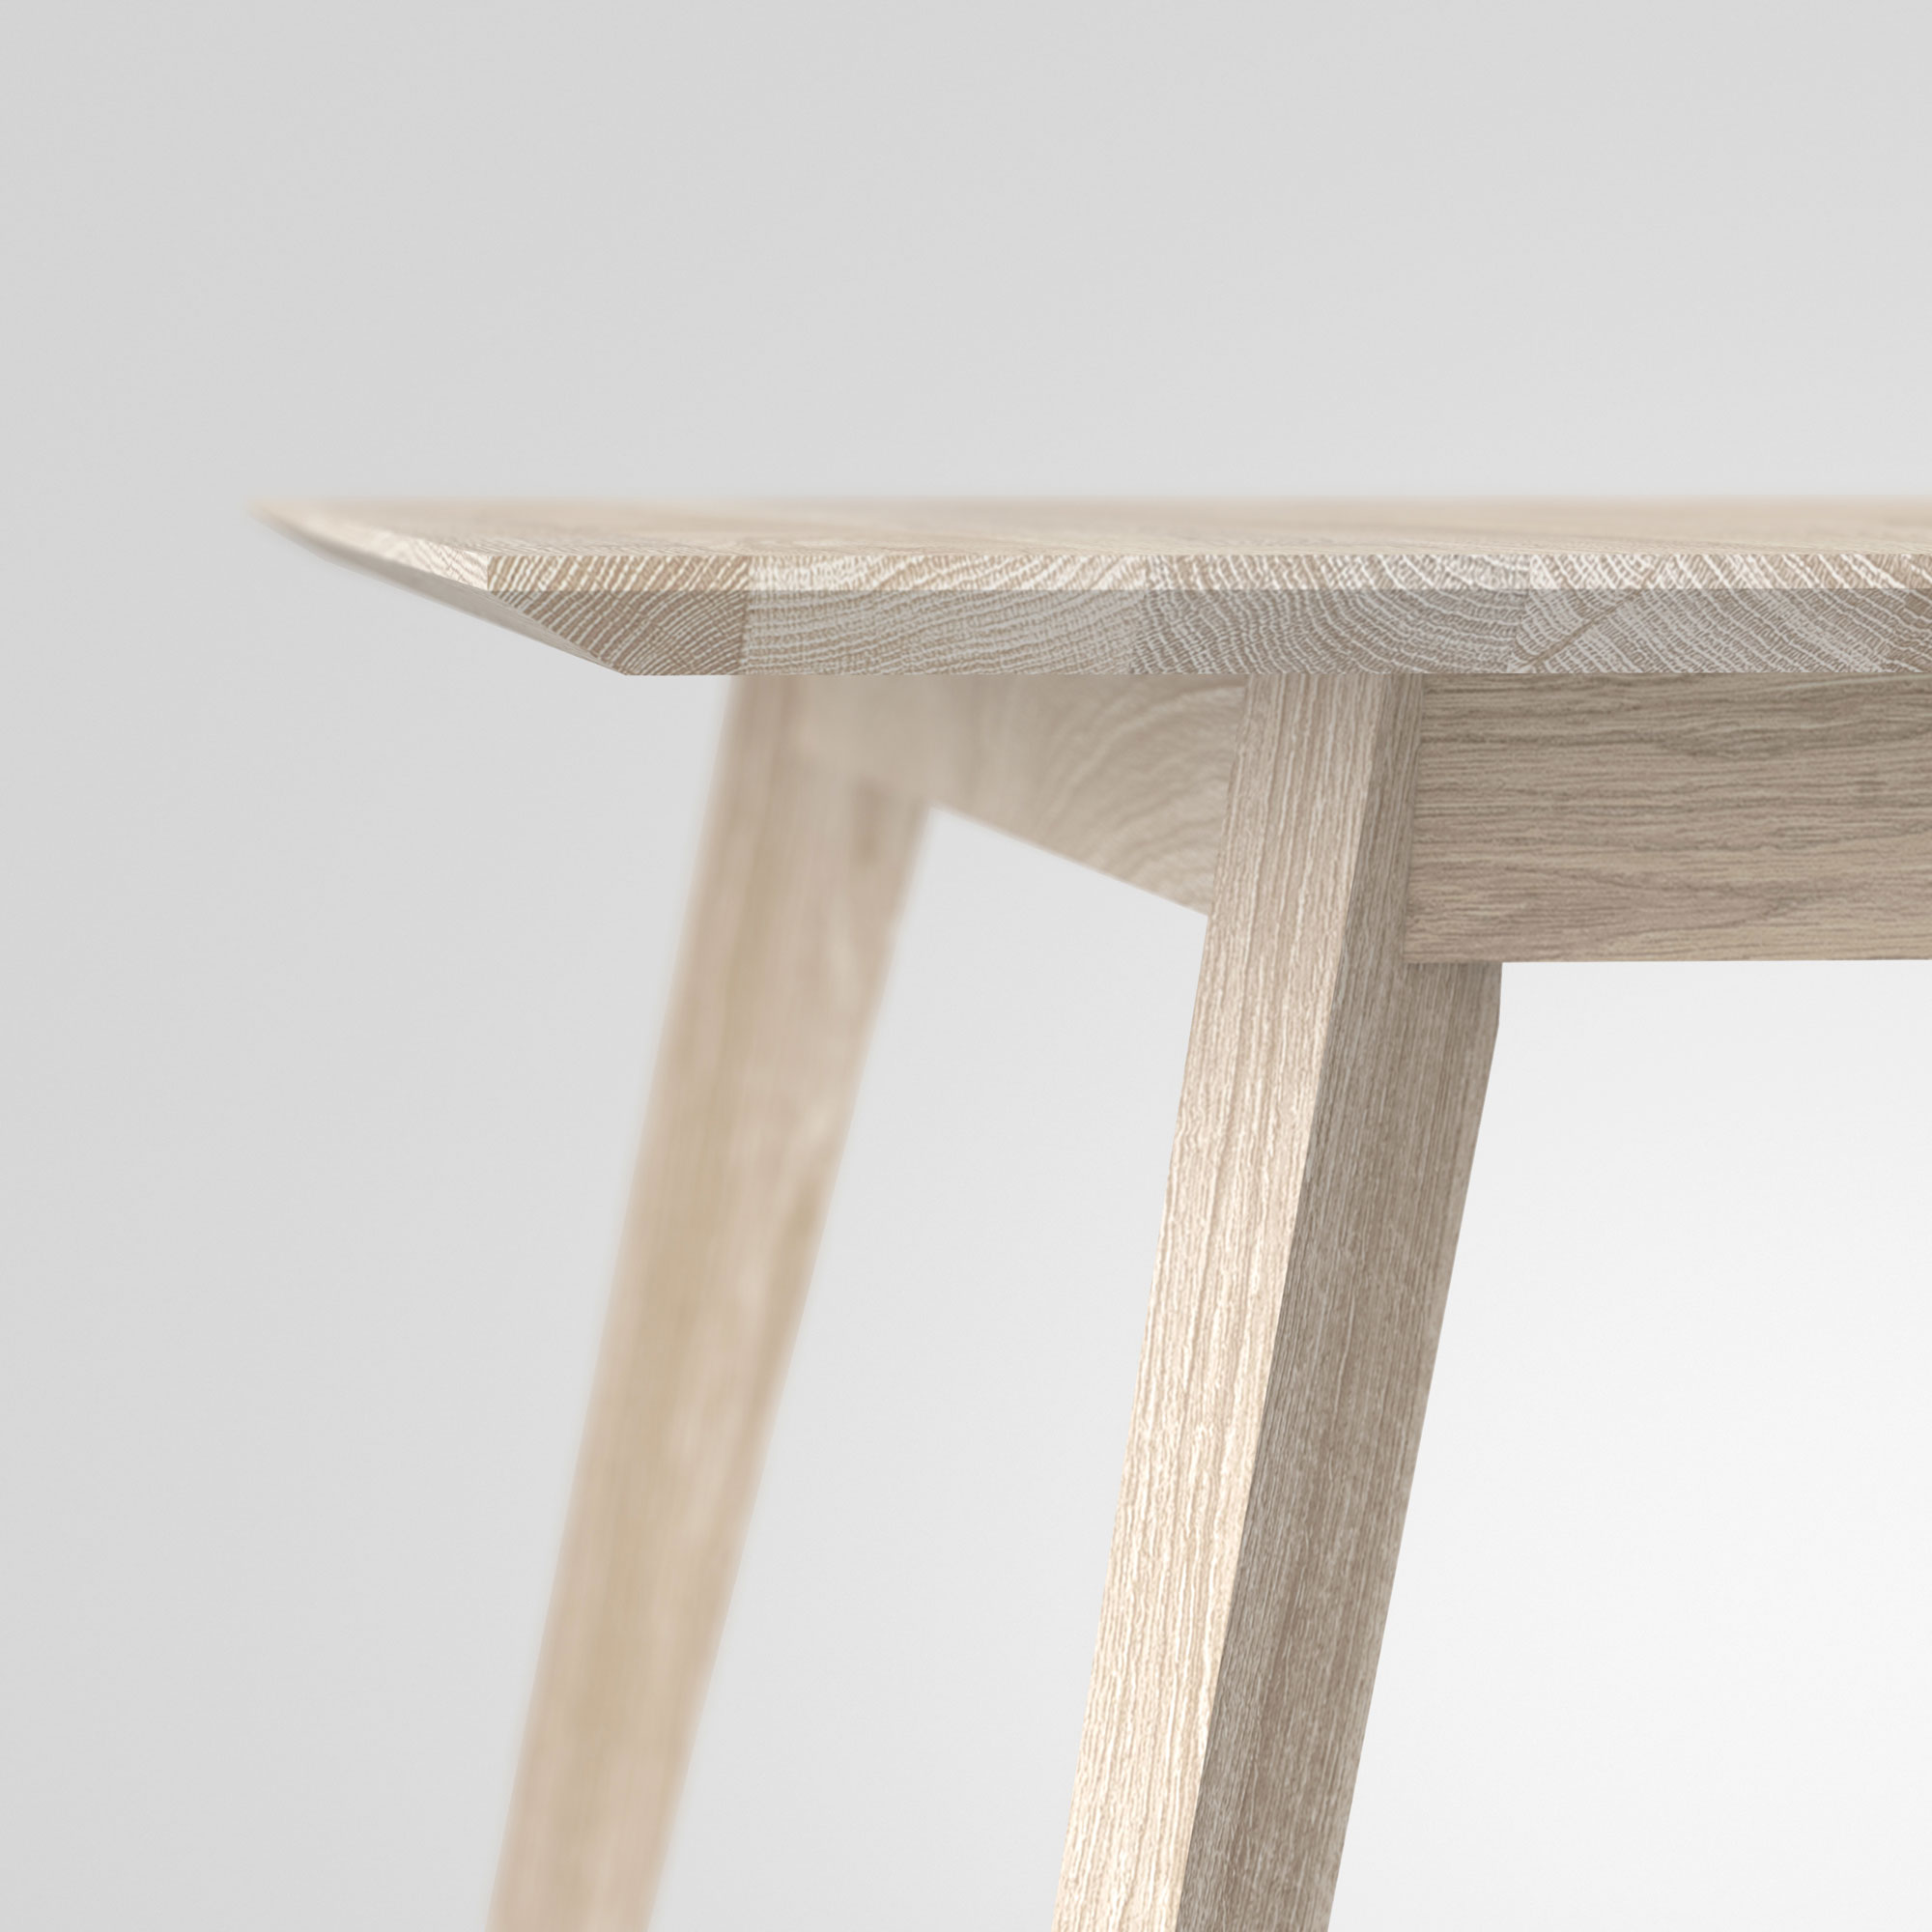 Solid Wood Dining Table CITIUS cam5 custom made in solid wood by vitamin design